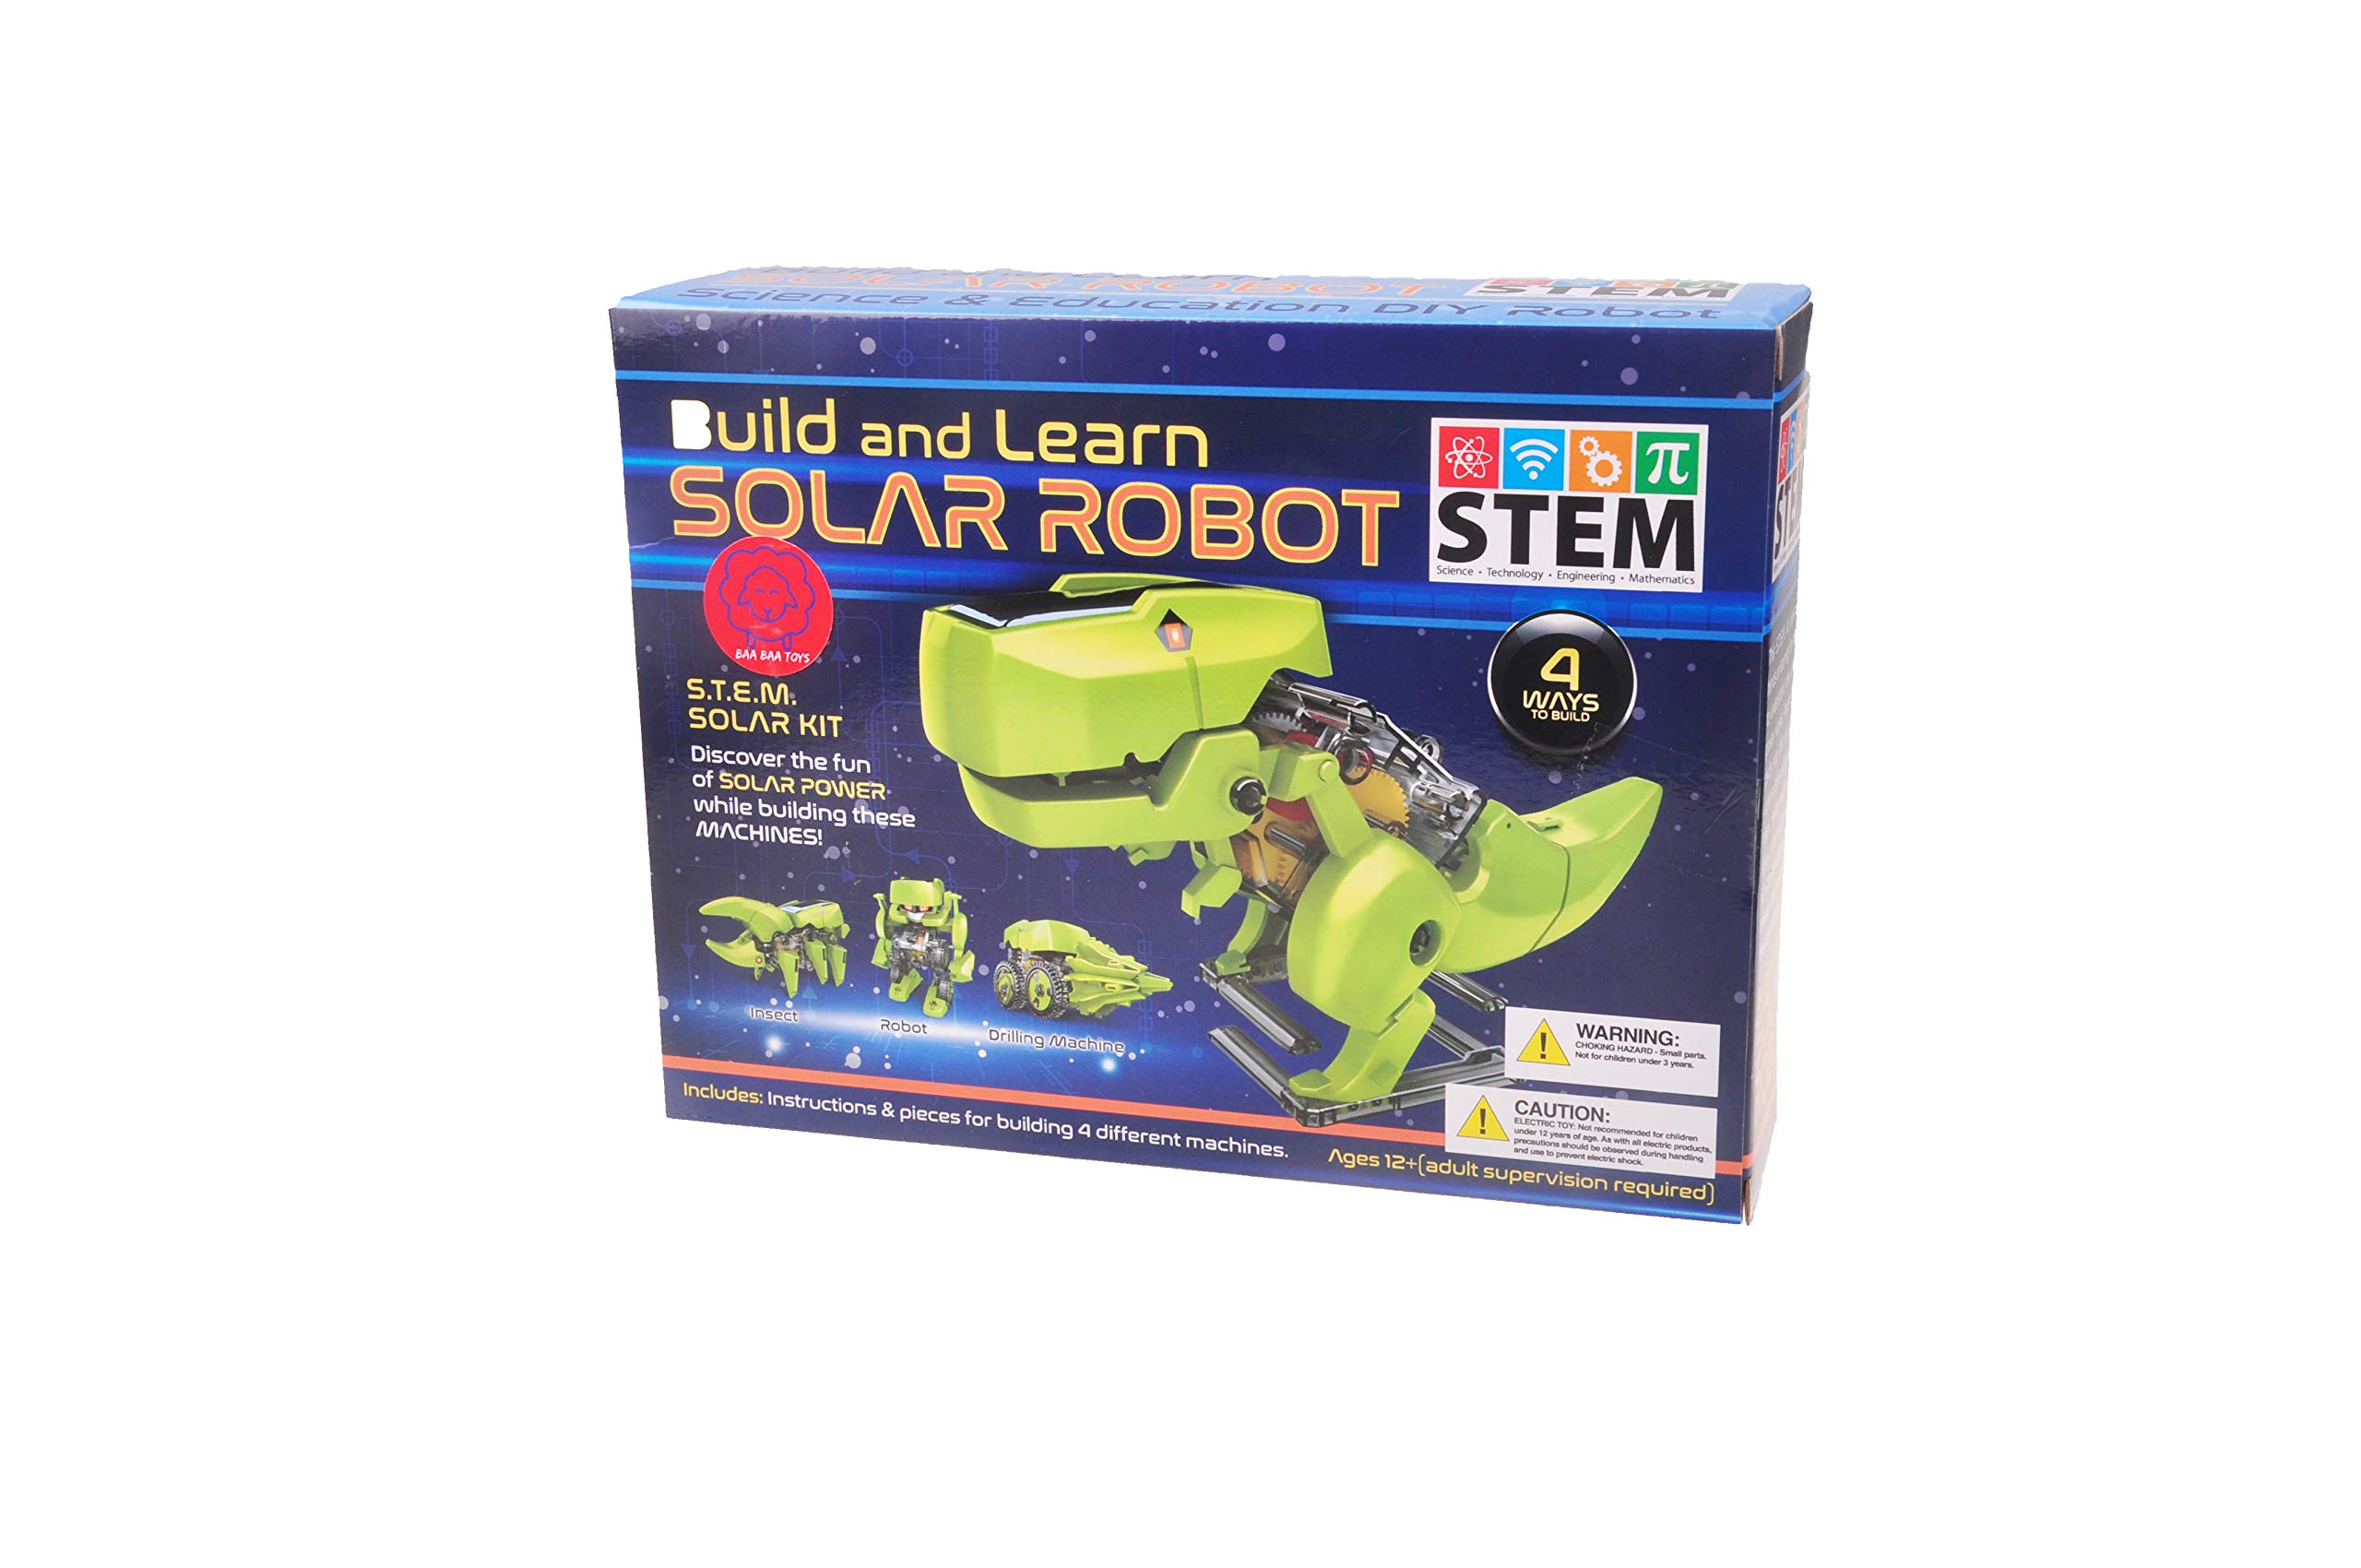 BAA BAA TOYS STEM Build and Learn Toy Solar Robotic Kit for Boys and Girls 4 in 1 Solar Power Building Kit Fun Learning Building Robotic Set for Kids Age 8 9 10 11 12 13 14 15 and Up by BAA BAA TOYS